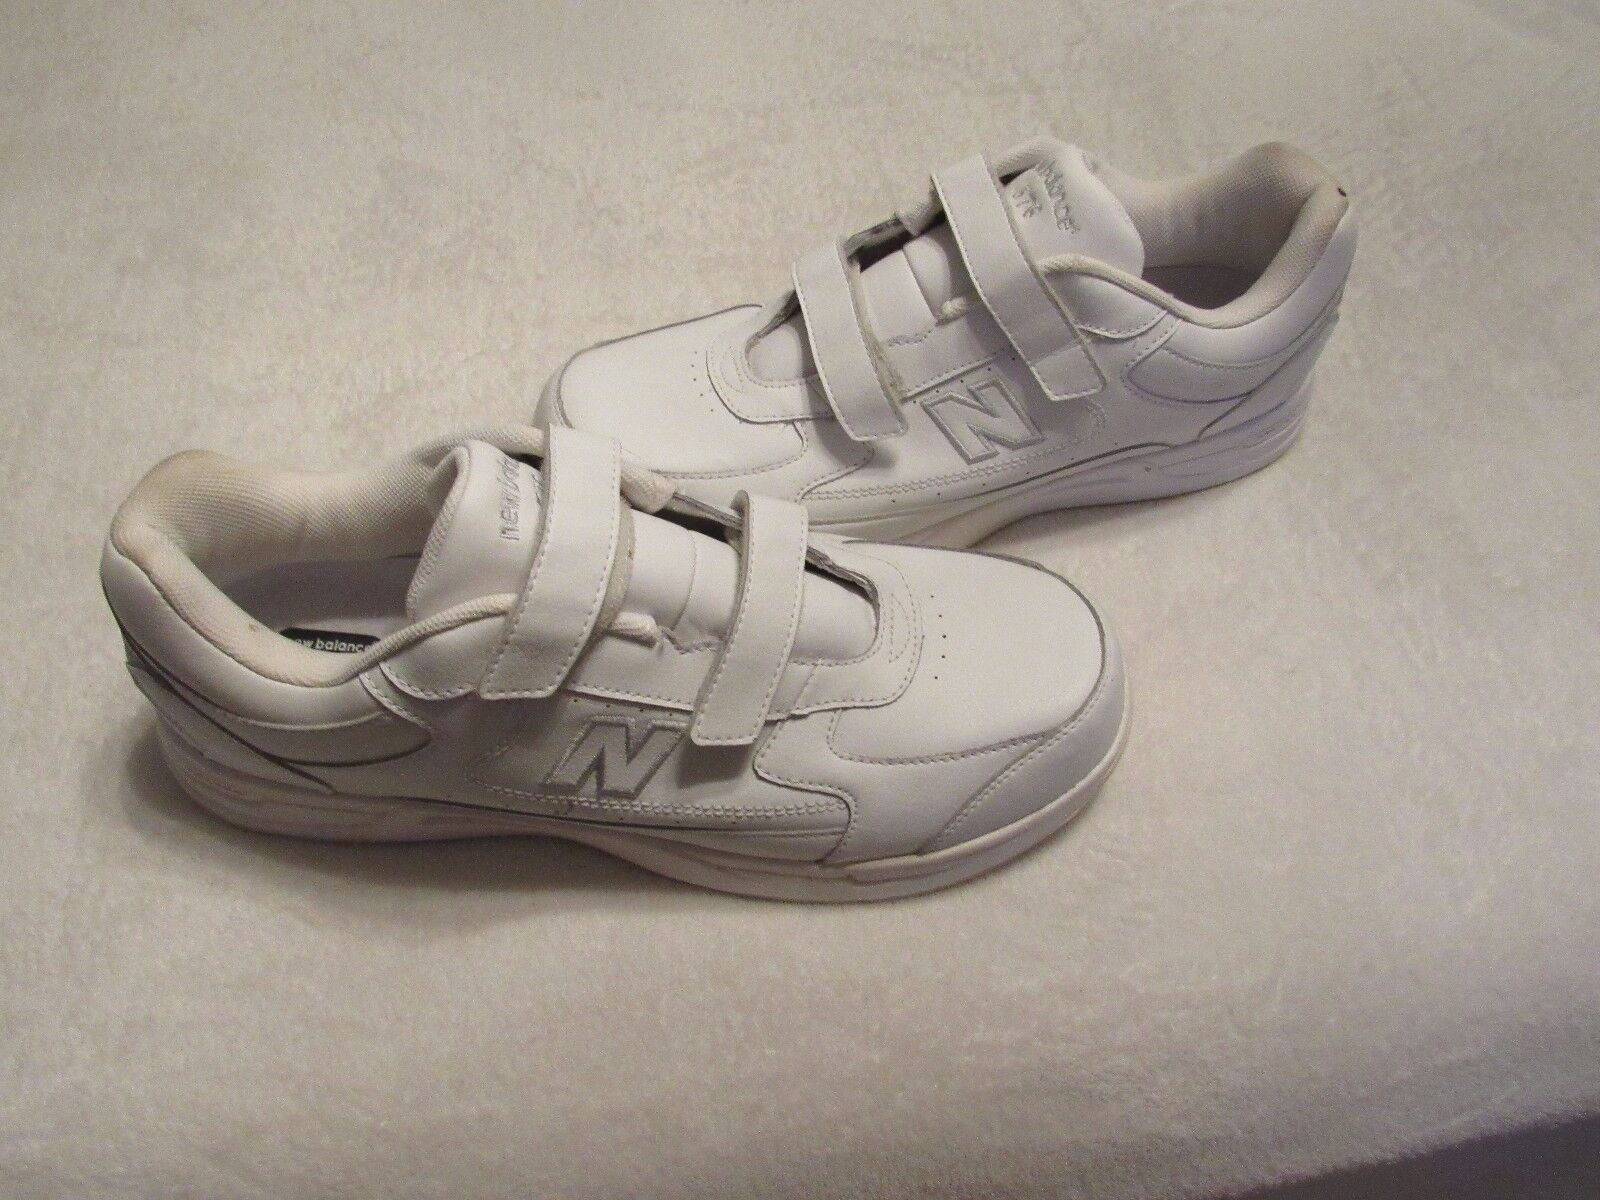 MENS new balance 576 dsl-2 walking athletic shoes size 14 d made in usa